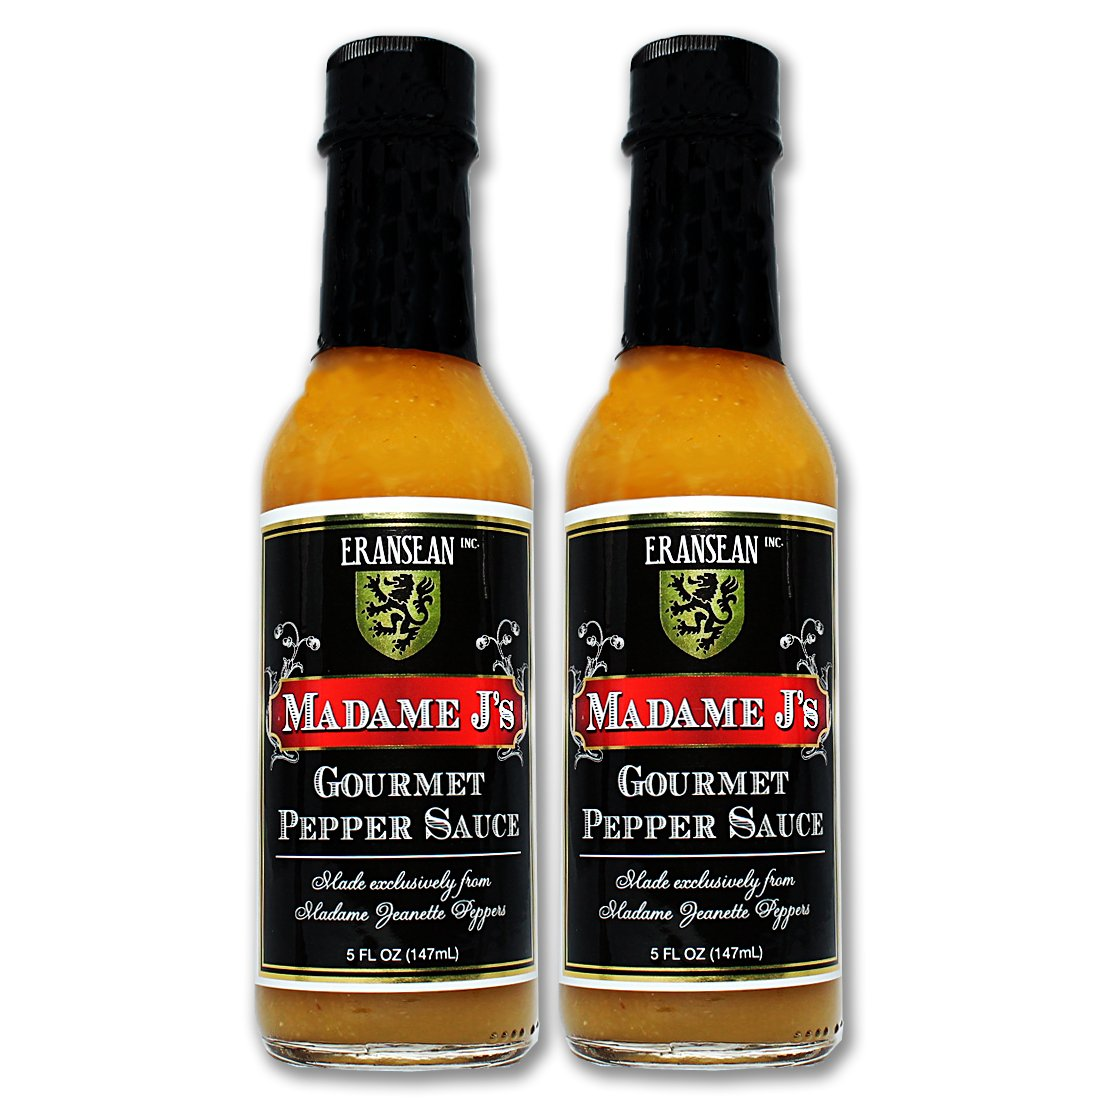 ERANSEAN Madame J's Gourmet Pepper Sauce – 2 pack/made from exclusively grown Madame Jeanette Peppers/natural unique flavor and heat/gluten free/shake bottle – 2-5 Fl. Oz. bottles